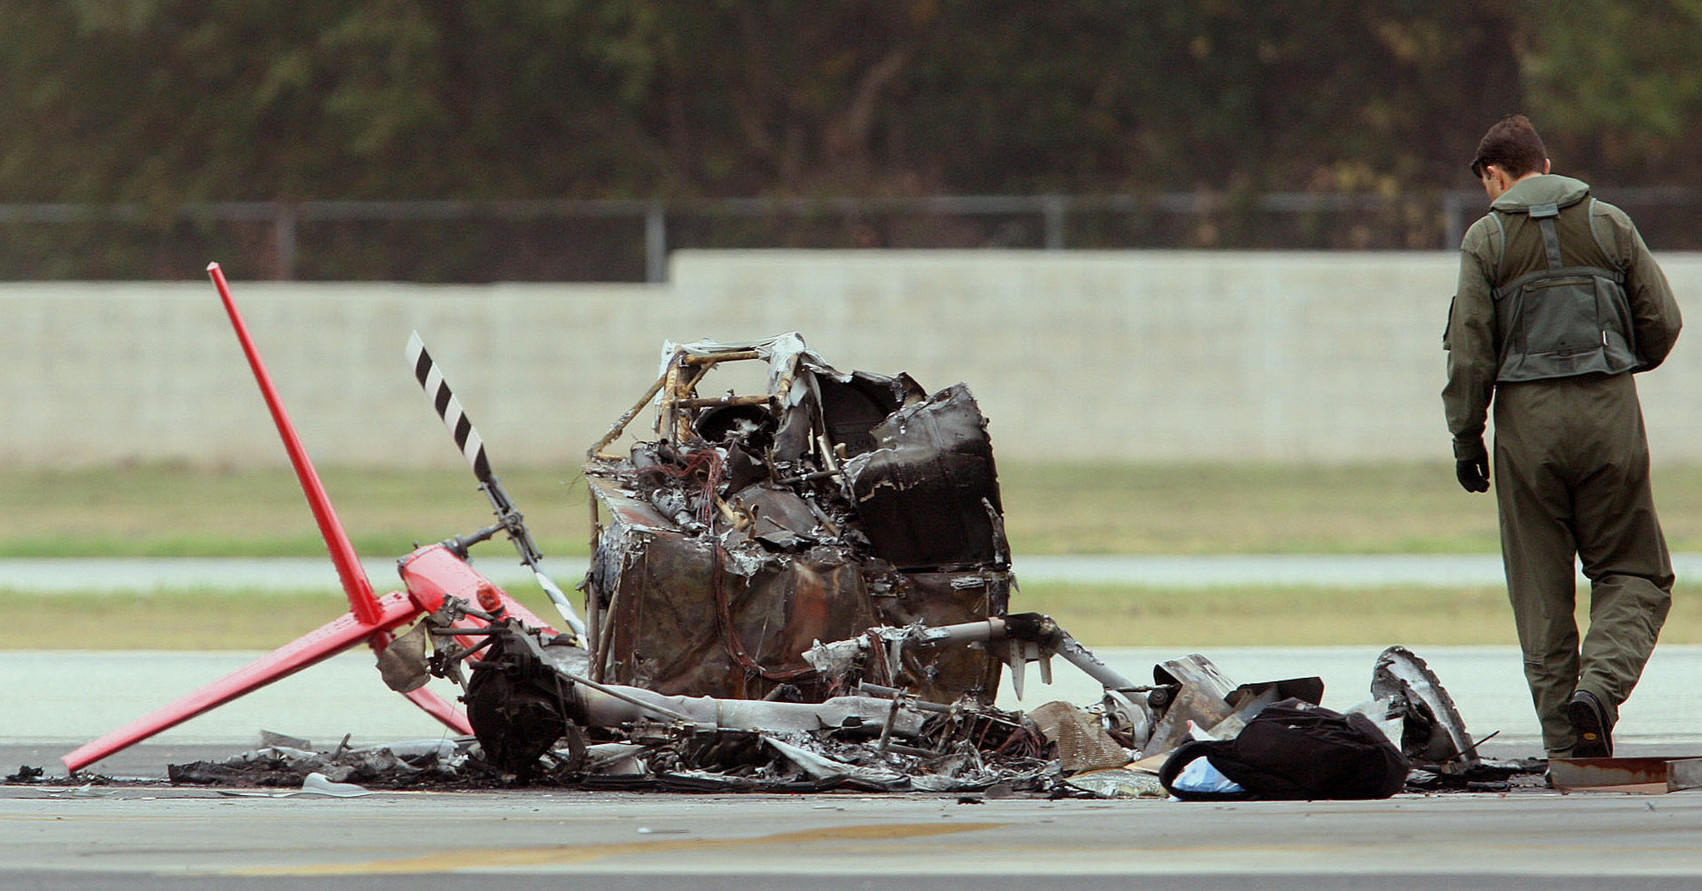 Danger Spins From The Sky The Robinson R44 The World S Best Selling Civilian Helicopter Has A Long History Of Deadly Crashes Los Angeles Times